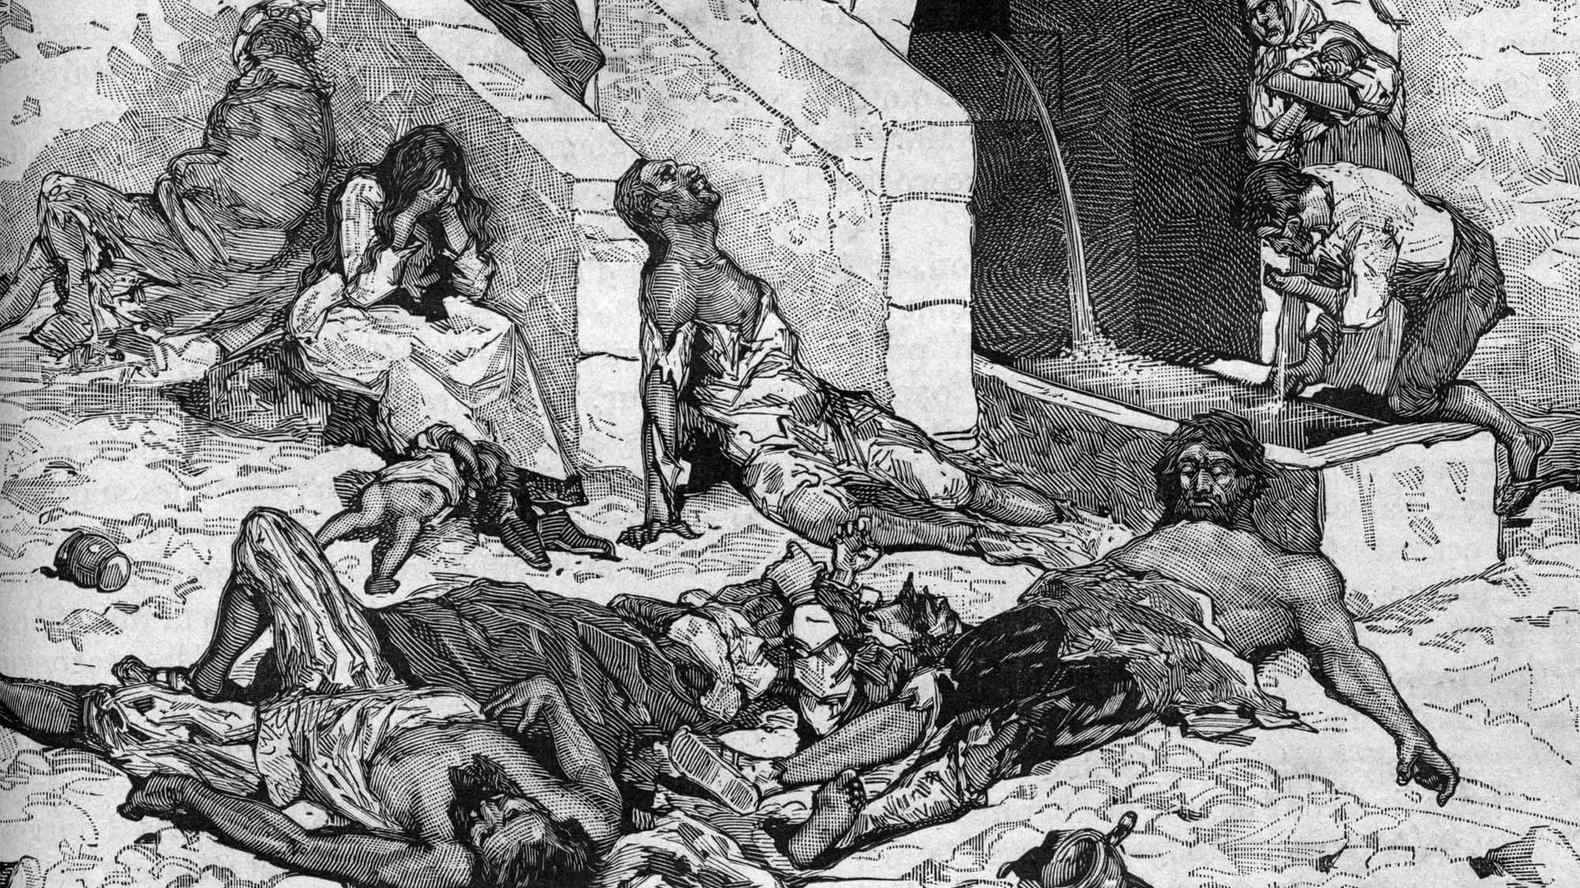 an analysis of the bubonic plague in people today The black death arrived in britain from central asia in the autumn of 1348 and by late spring the following year it had killed six out of every 10 people in london such a rate of destruction.